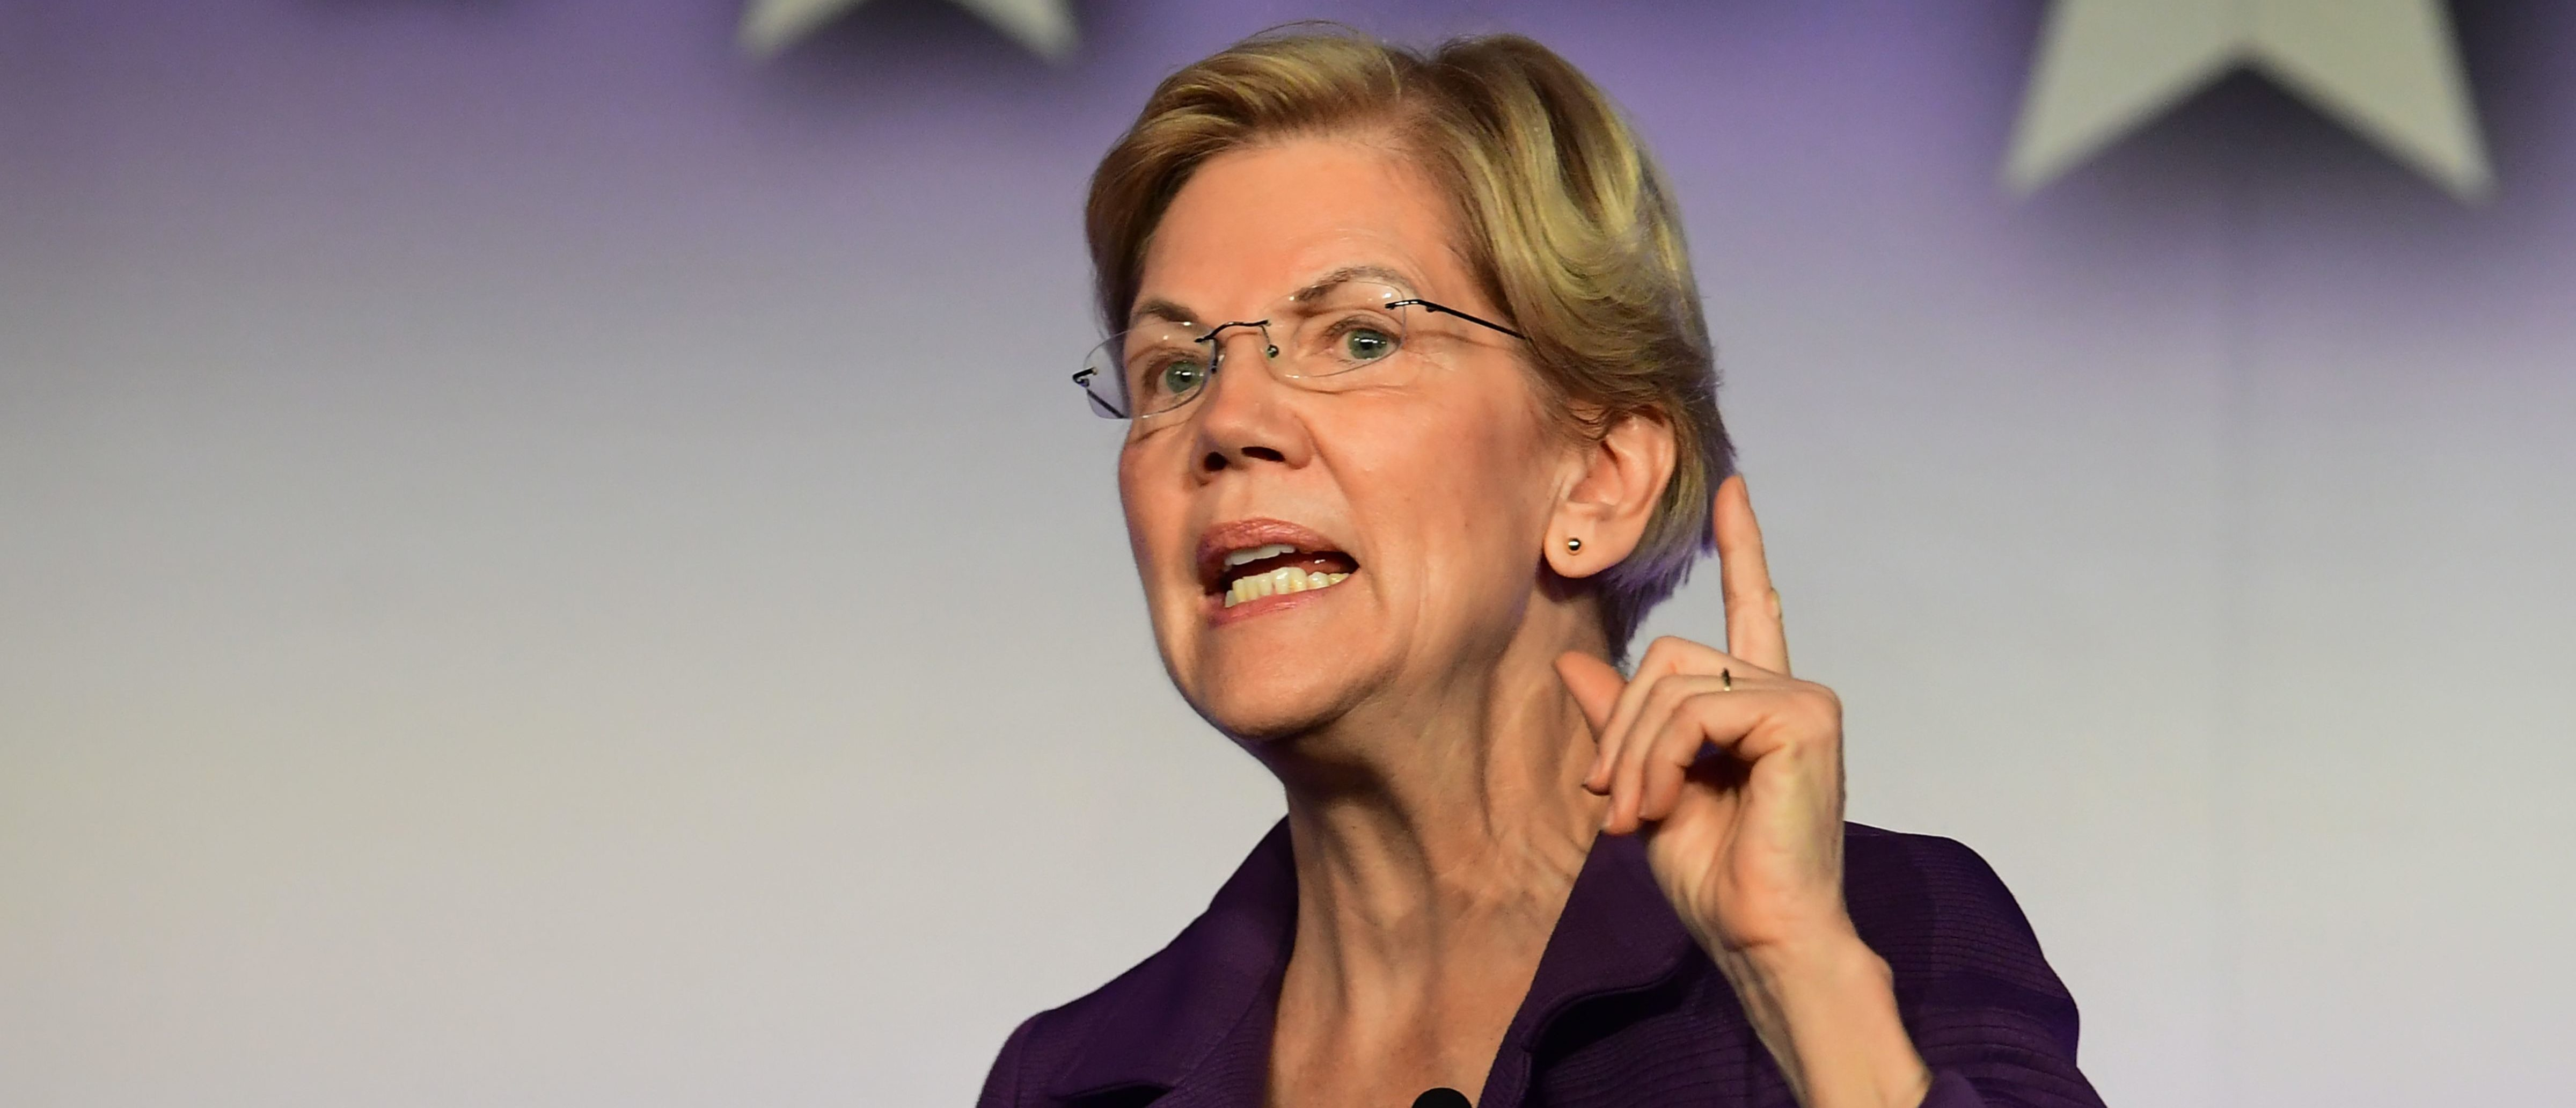 Elizabeth Warren Said She Was Pushed Out Of Teaching Job For Being 'Visibly Pregnant' — But She Told A Different Story In 2007 | The Daily Caller